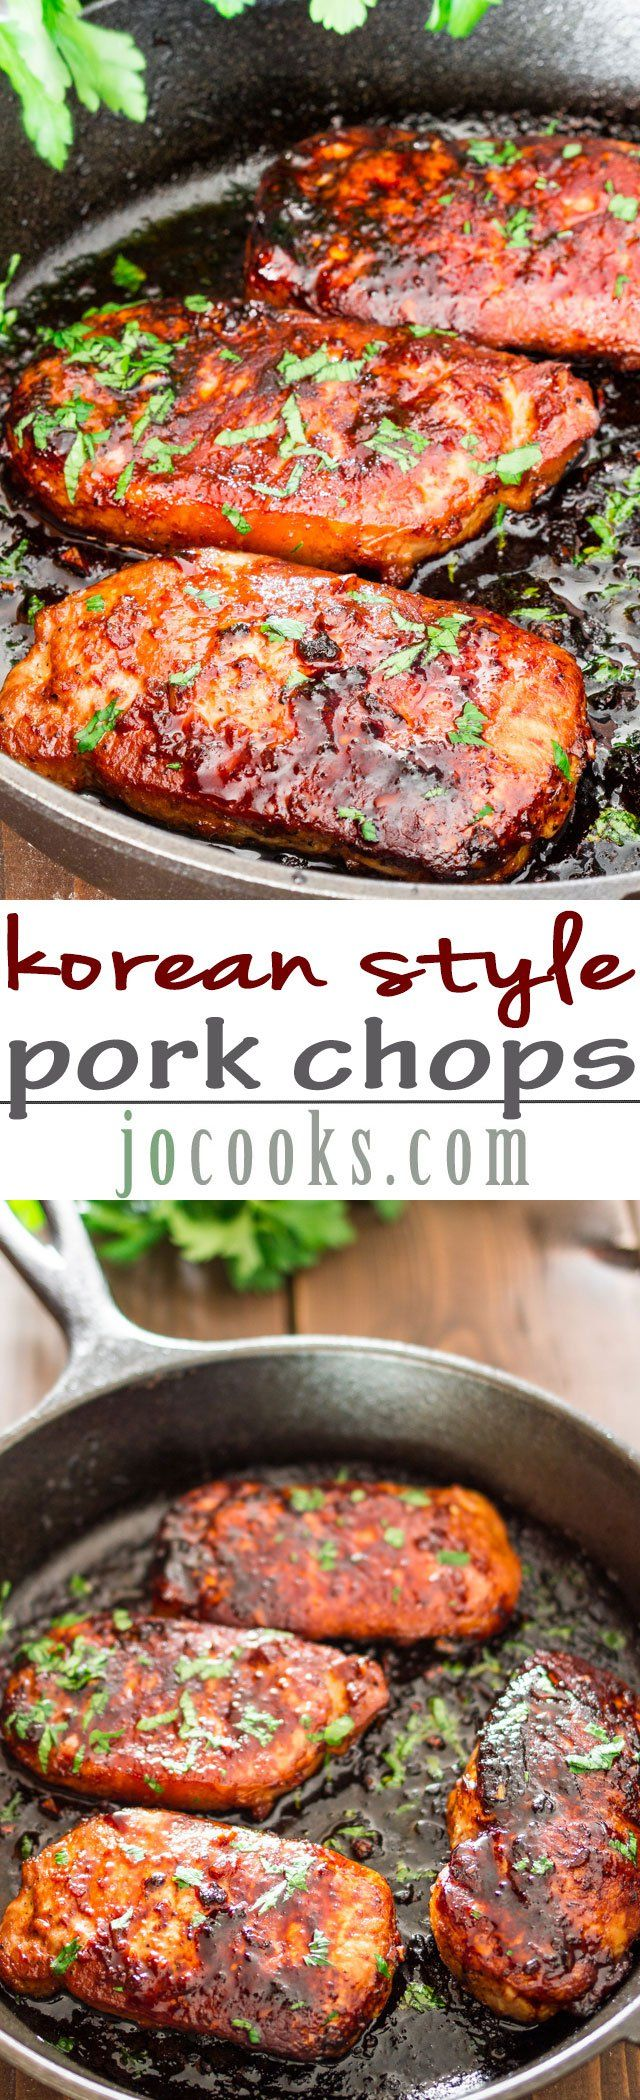 These were DELICIOUS. I always made pork chops too dry but this marinade made them nice and juicy, too!